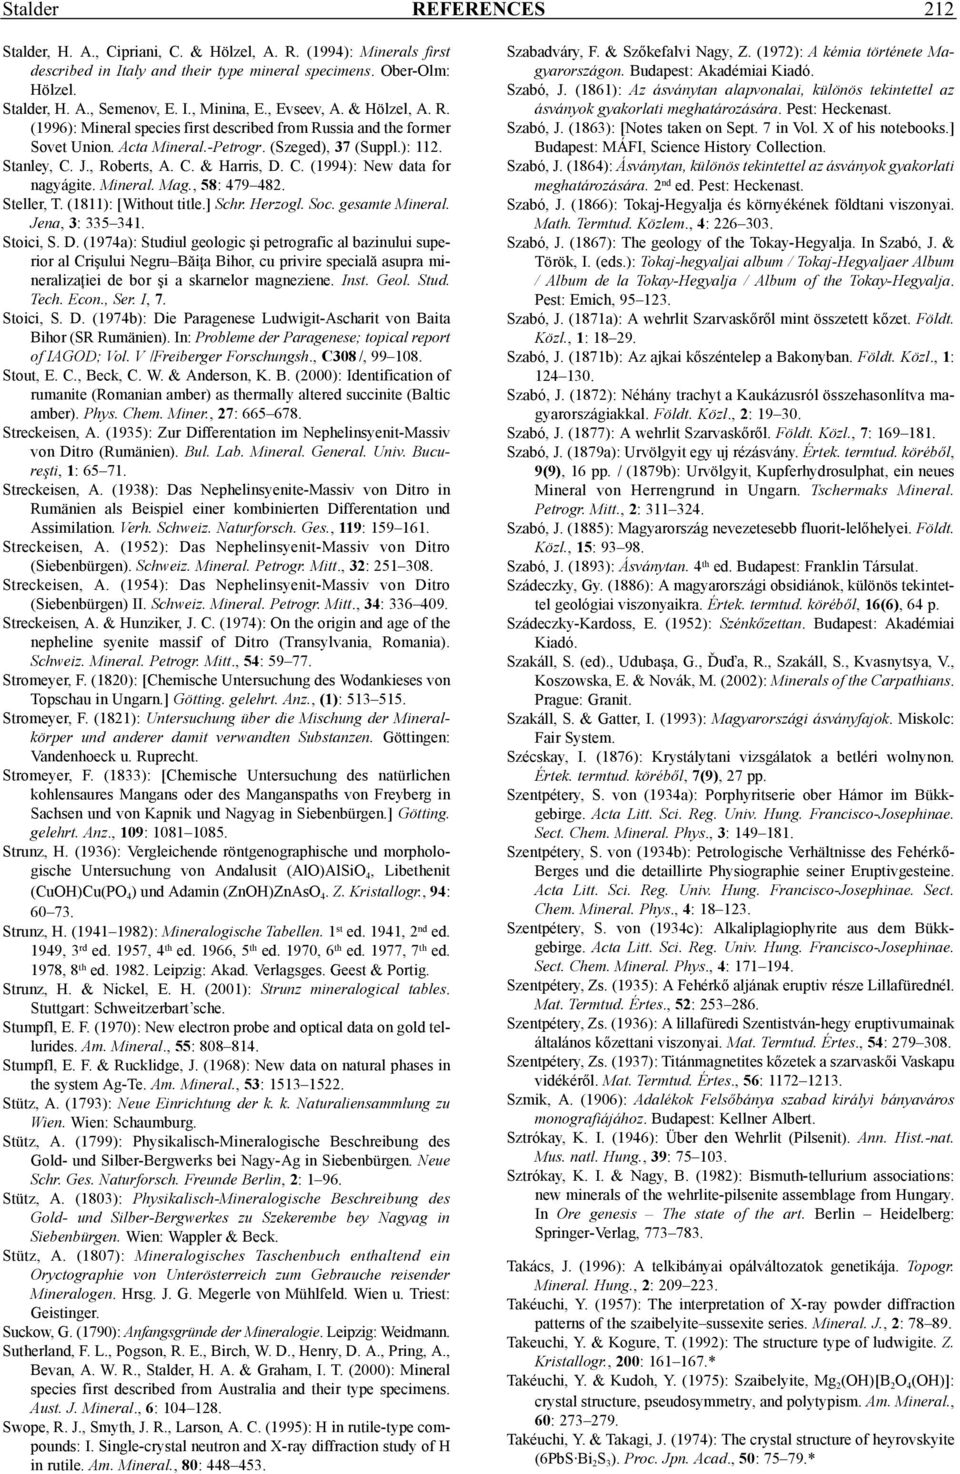 C. (1994): New data for nagyágite. Mineral. Mag., 58: 479 482. Steller, T. (1811): [Without title.] Schr. Herzogl. Soc. gesamte Mineral. Jena, 3: 335 341. Stoici, S. D.